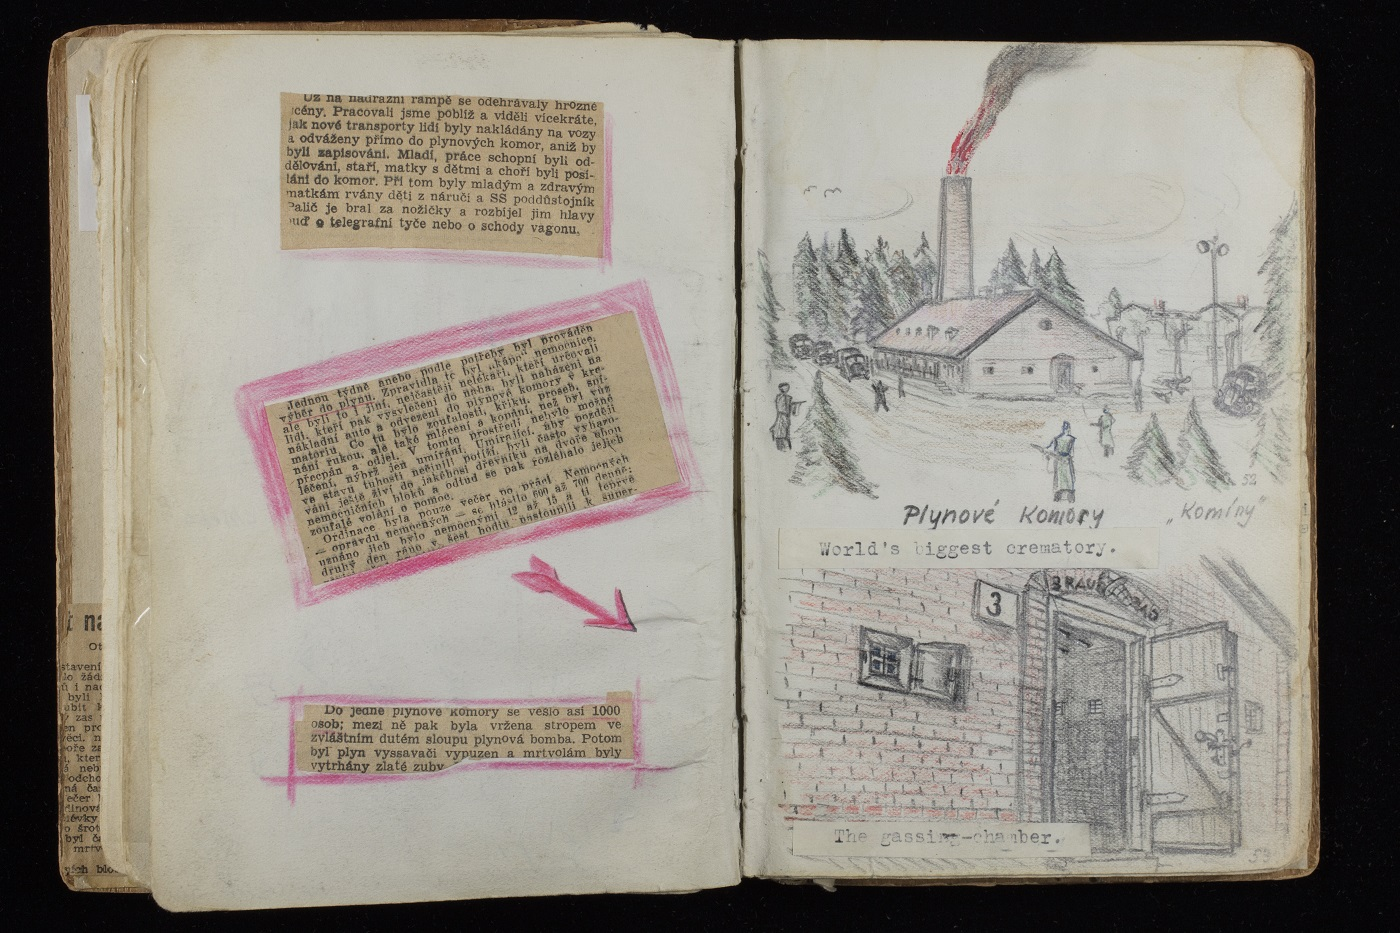 Open page of Alfred Kantor's sketchbook featuring crematoria